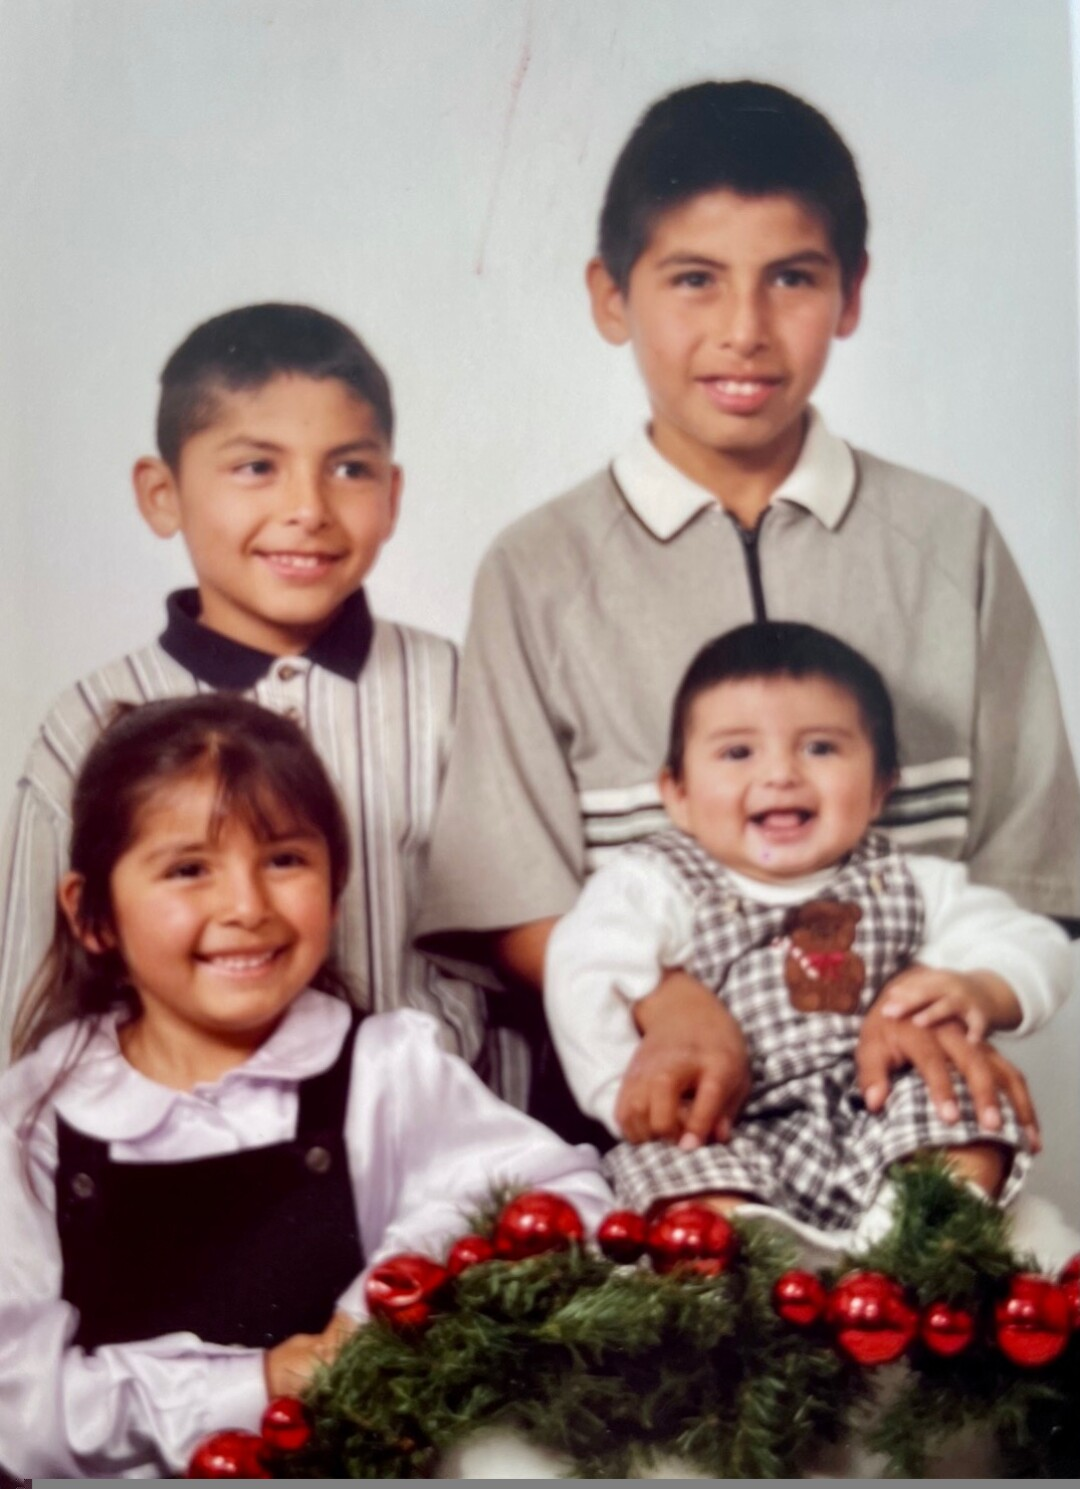 Edward, top right, holding Issac and smiling along with Veronica and David.